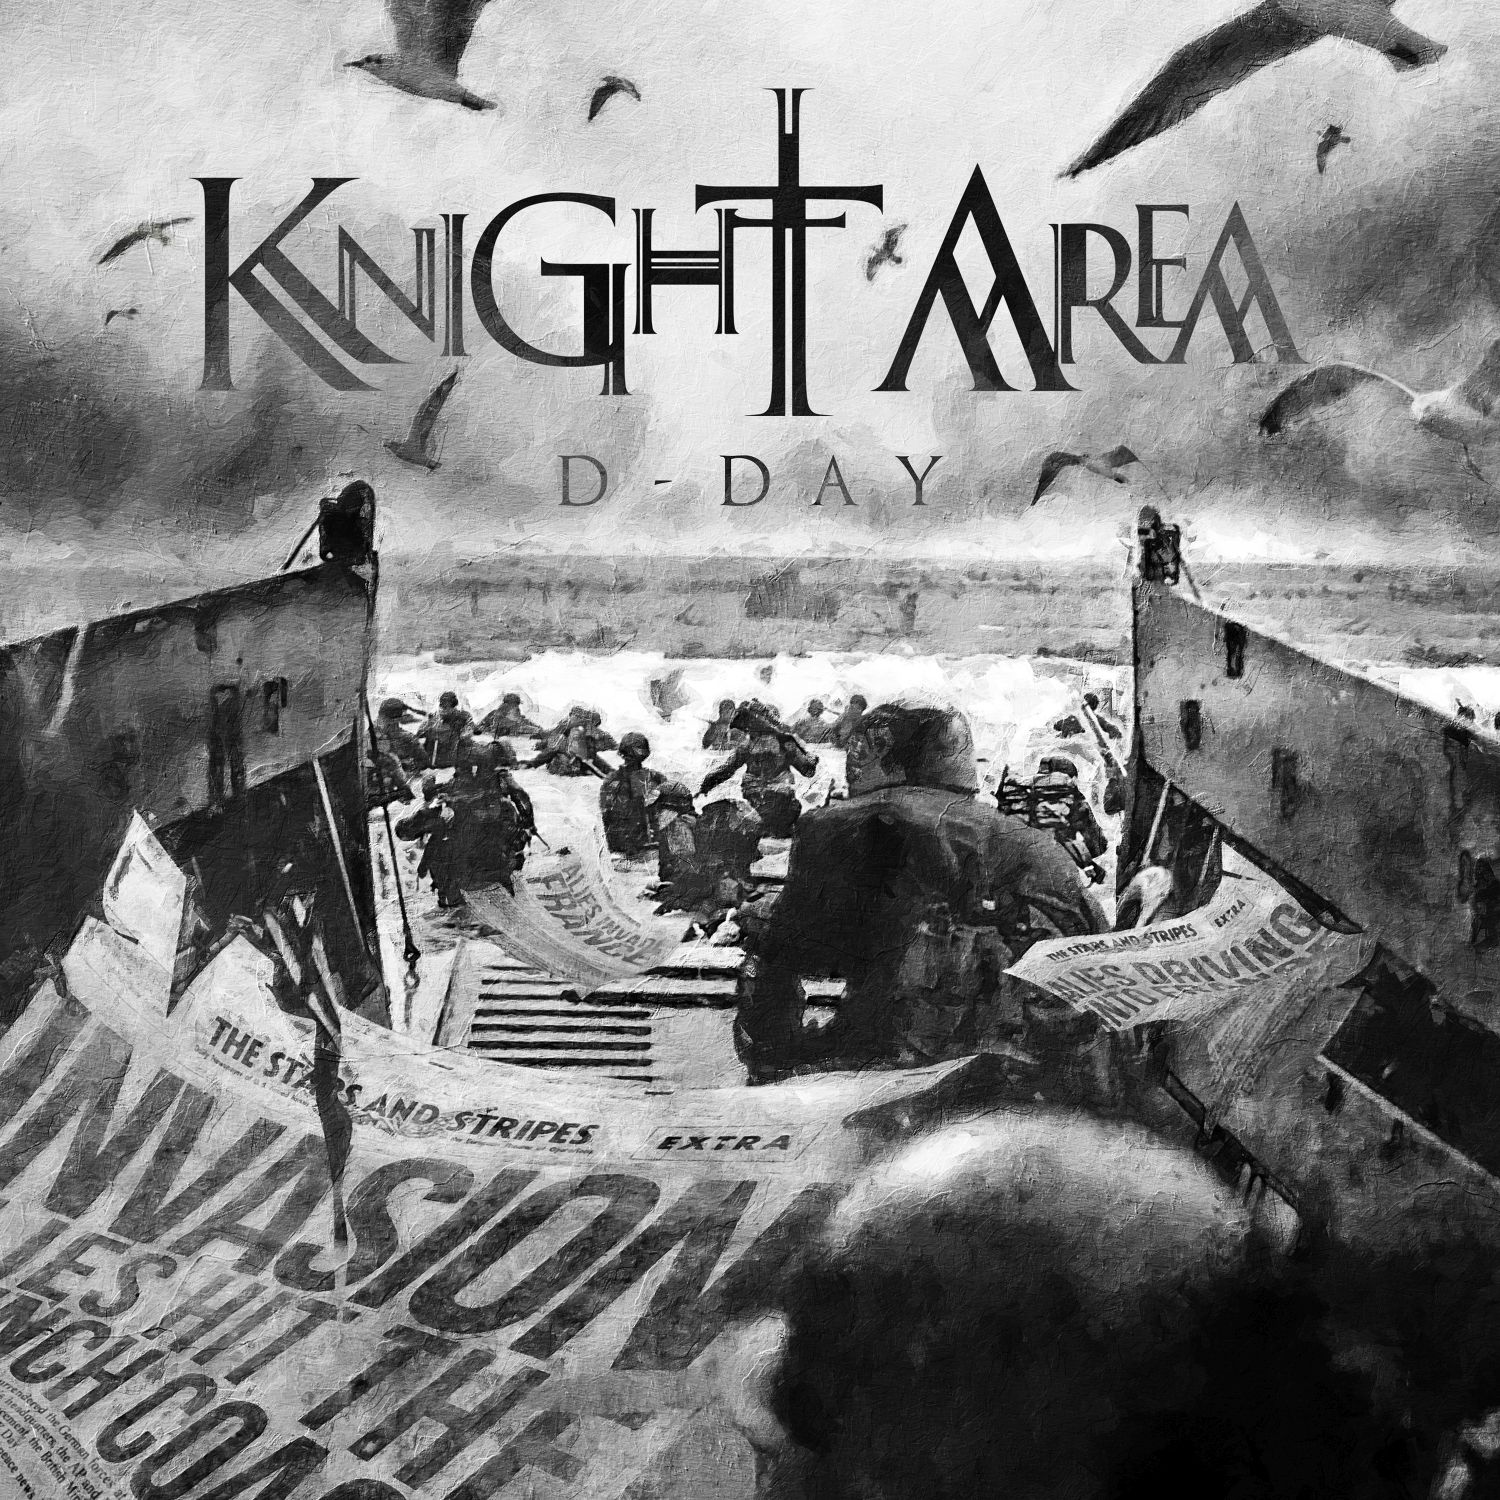 knight area d-day